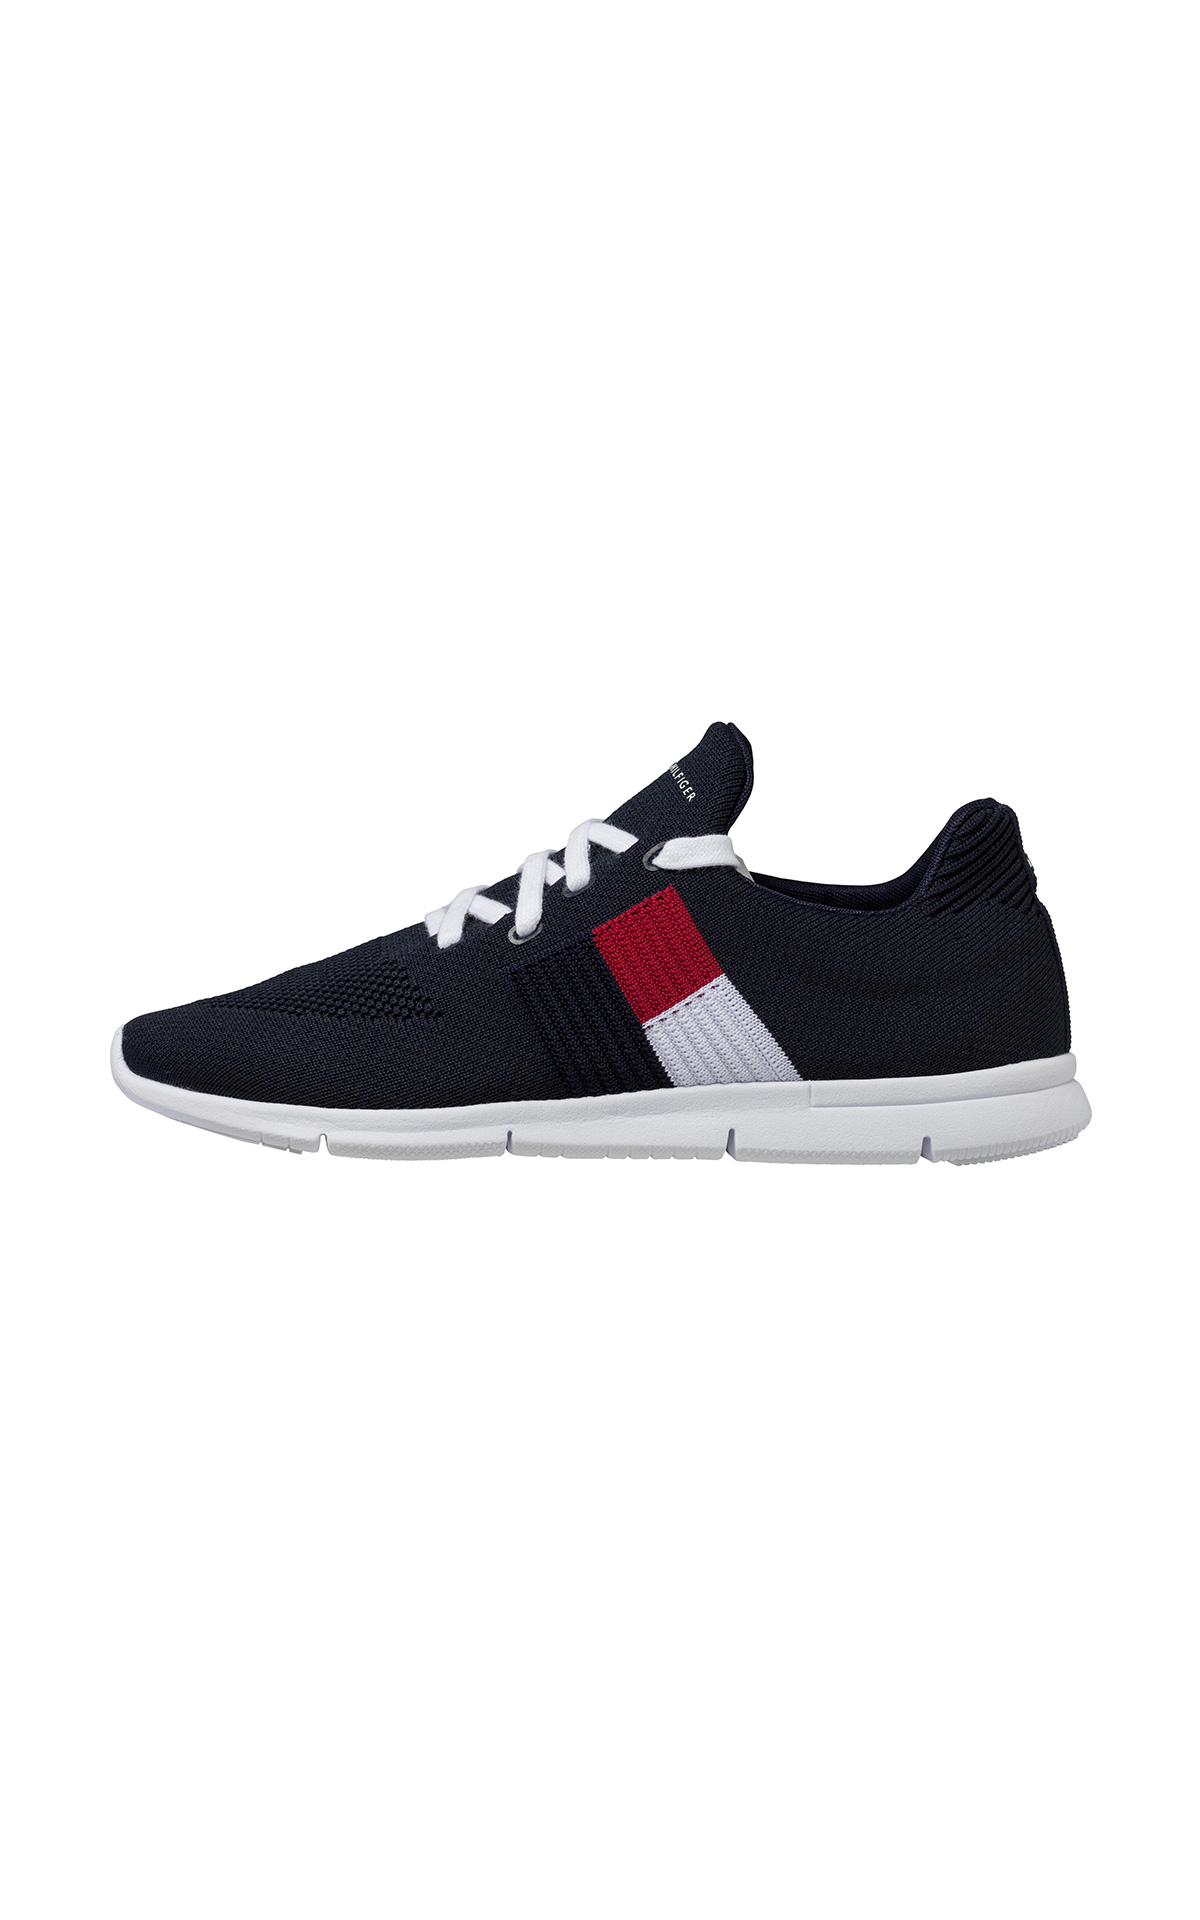 Tommy Hilfiger women's sneakers at The Bicester Village Shopping Collection